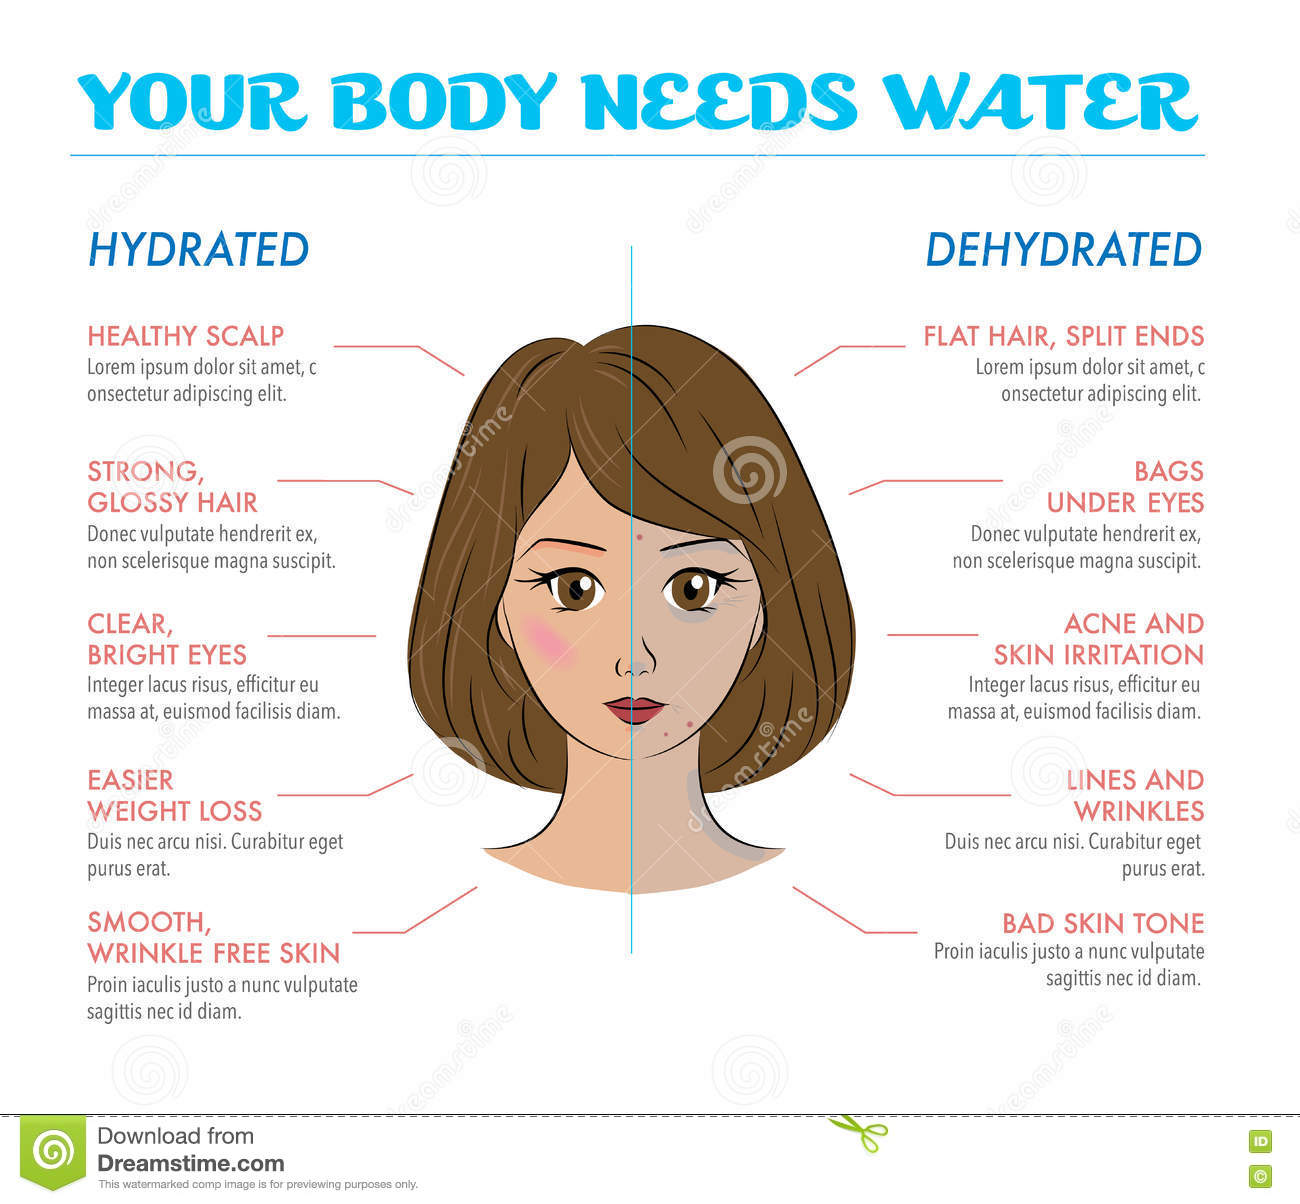 tap water pros and cons Home environment 13 impressive pros and cons of bottled water 13 impressive pros and cons of bottled water environment aug 22, 2015 our bodies are composed primarily of water, between 55 to 78 percent this is why water is vital to us human beings can live on water alone in fact, we can last for several weeks just by drinking.